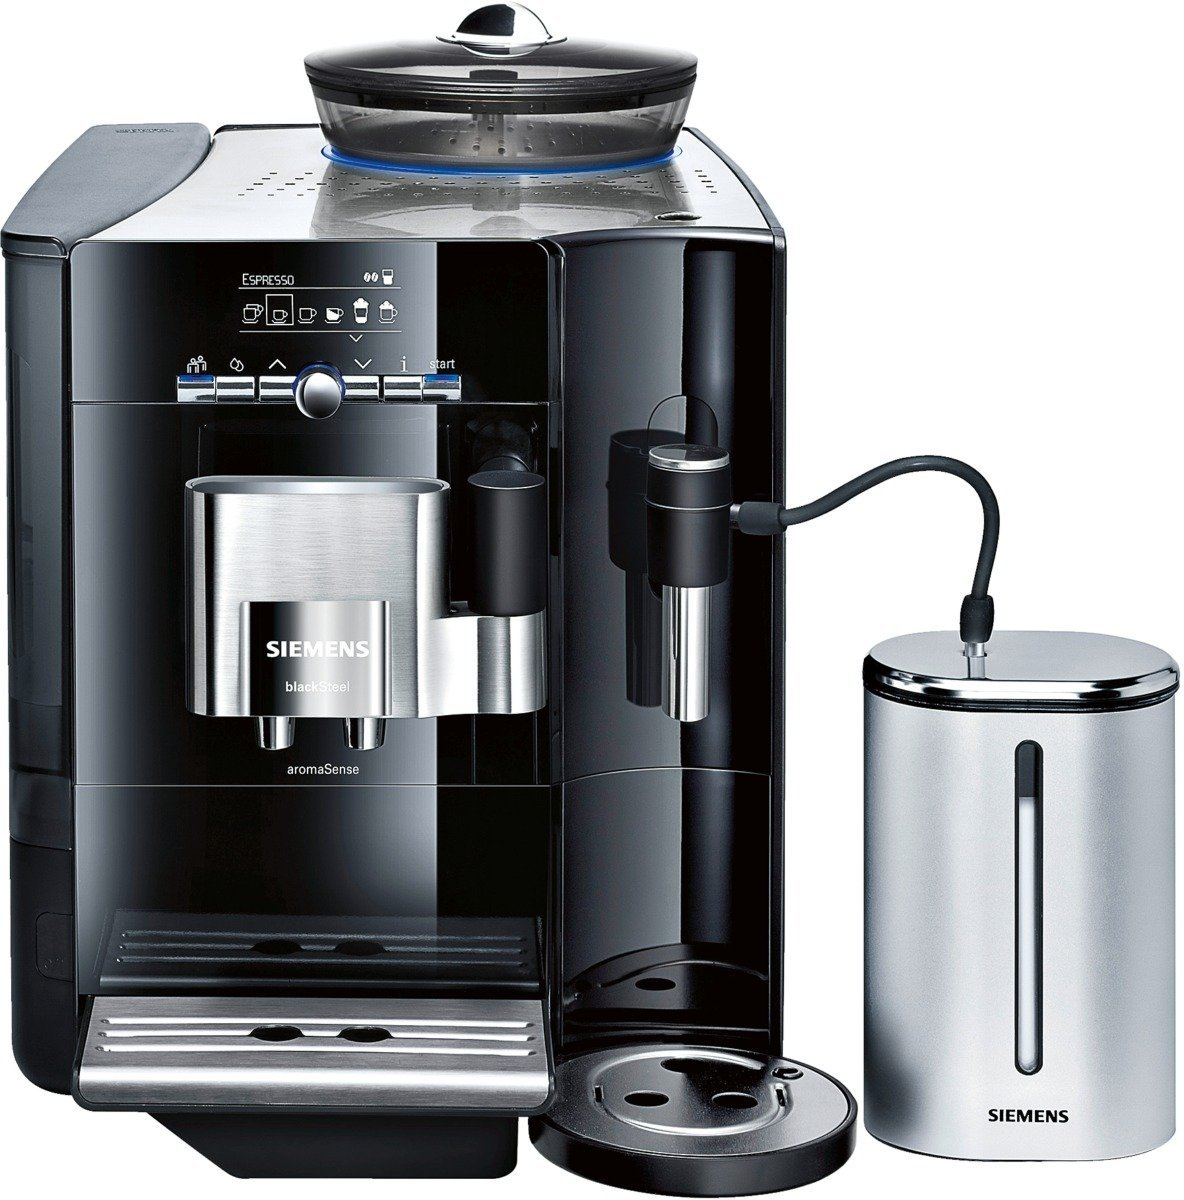 siemens te716519de kaffee vollautomat eq 7 plus aroma sense kaffeevollautomat test. Black Bedroom Furniture Sets. Home Design Ideas